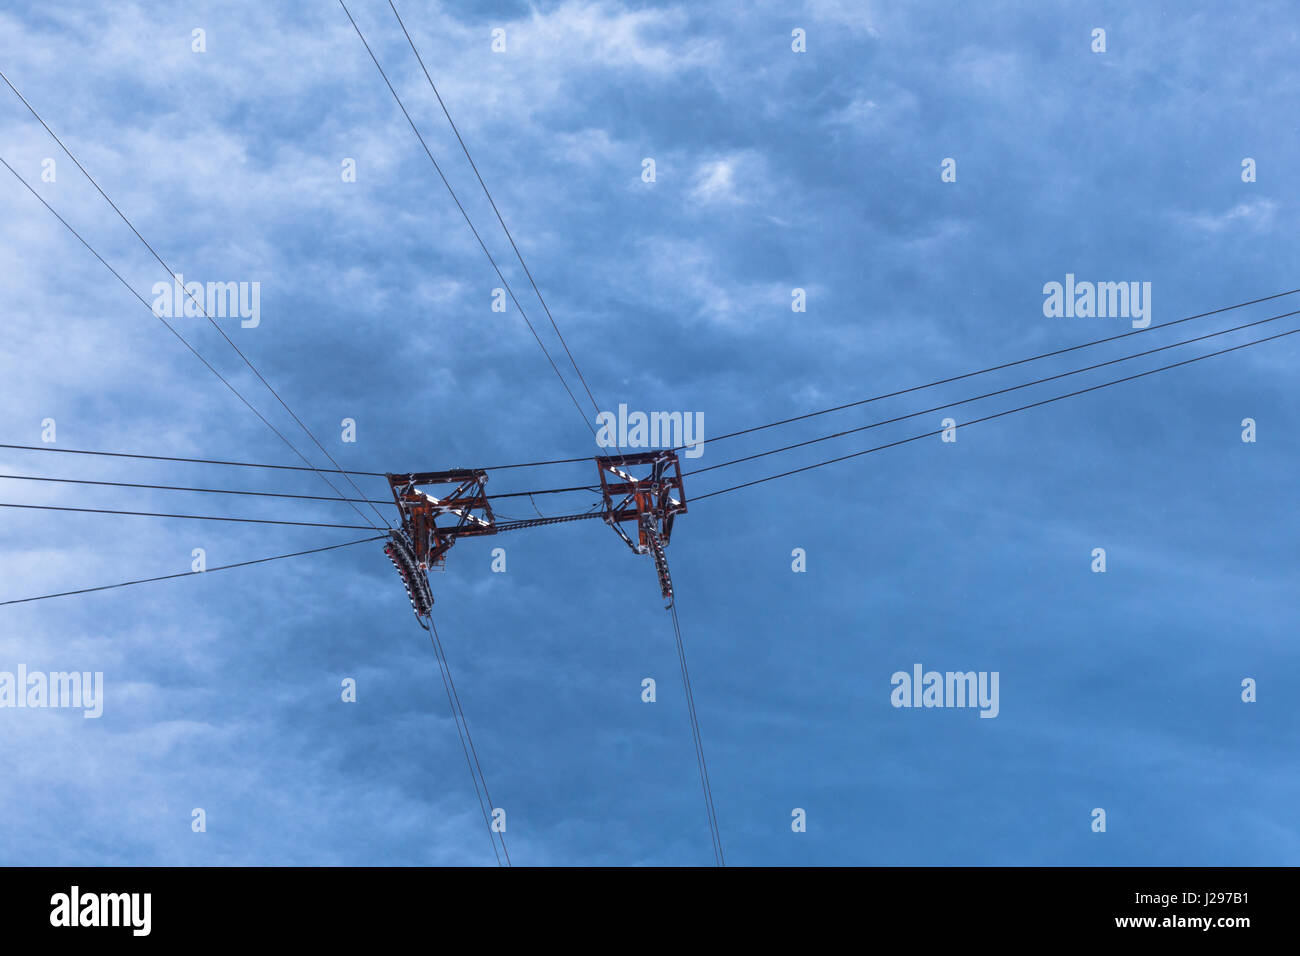 Cable car ski lift pulley wheels suspended by wires cables high ...